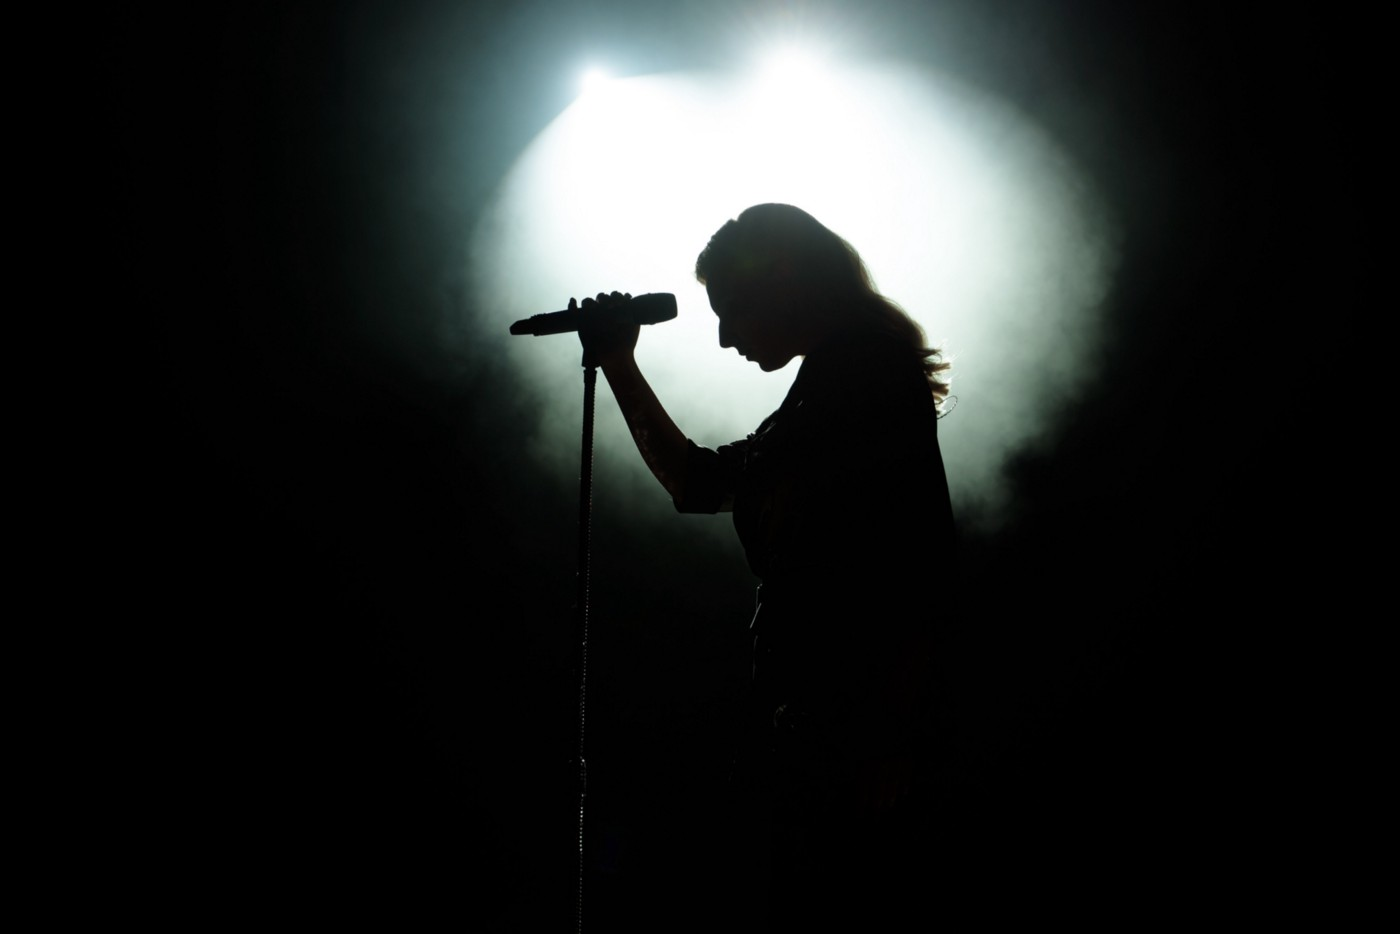 A spotlight shines on a person who is about to perform.